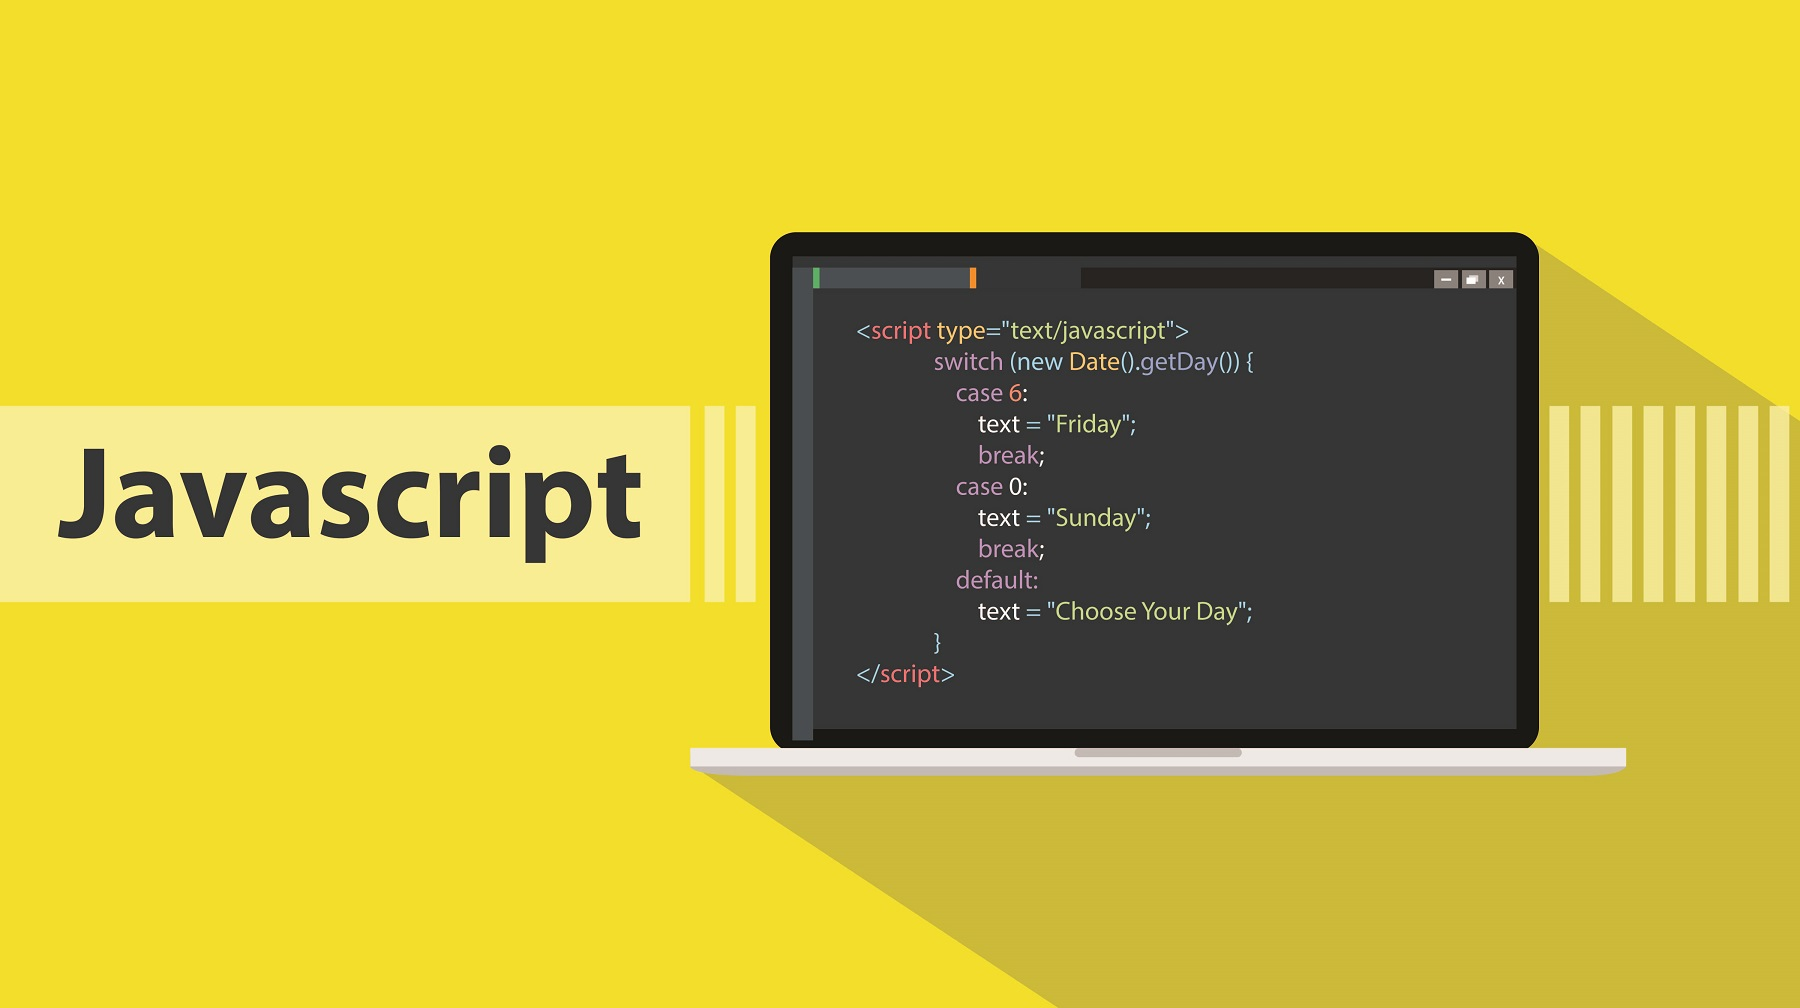 4 JavaScript tools to clean up your dirty code